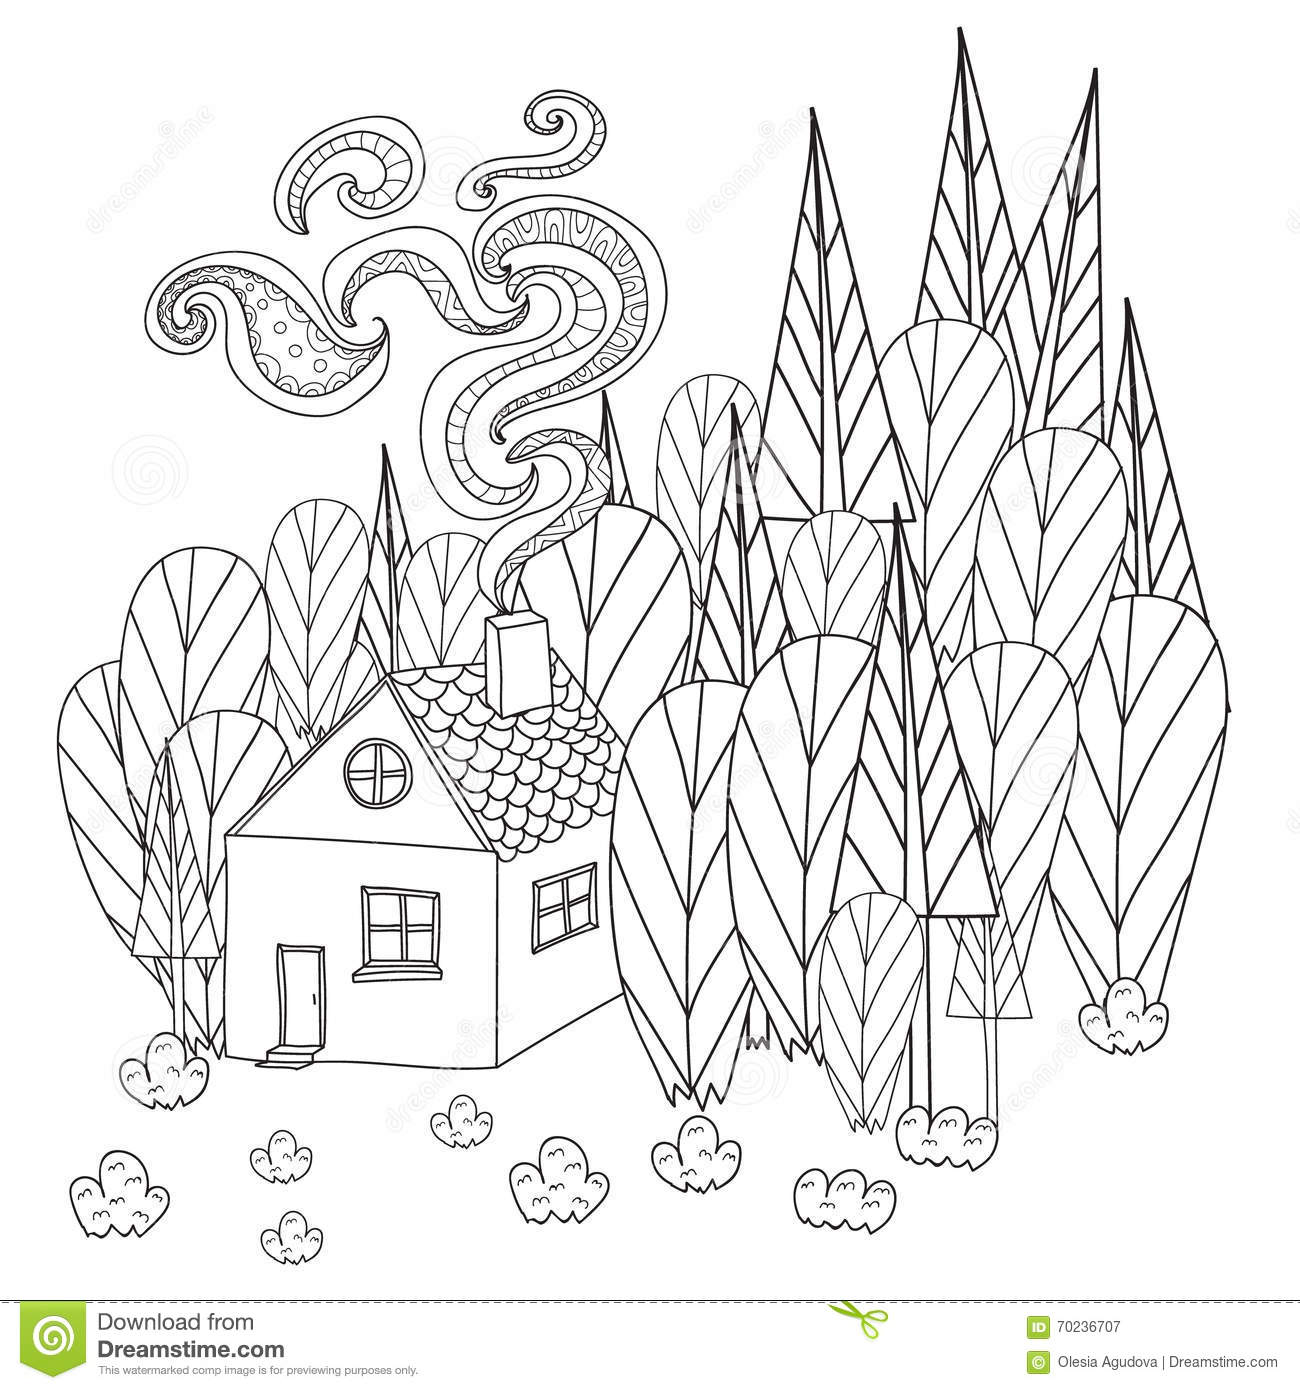 Coloring pages for adults and children book cartoon house in the forest